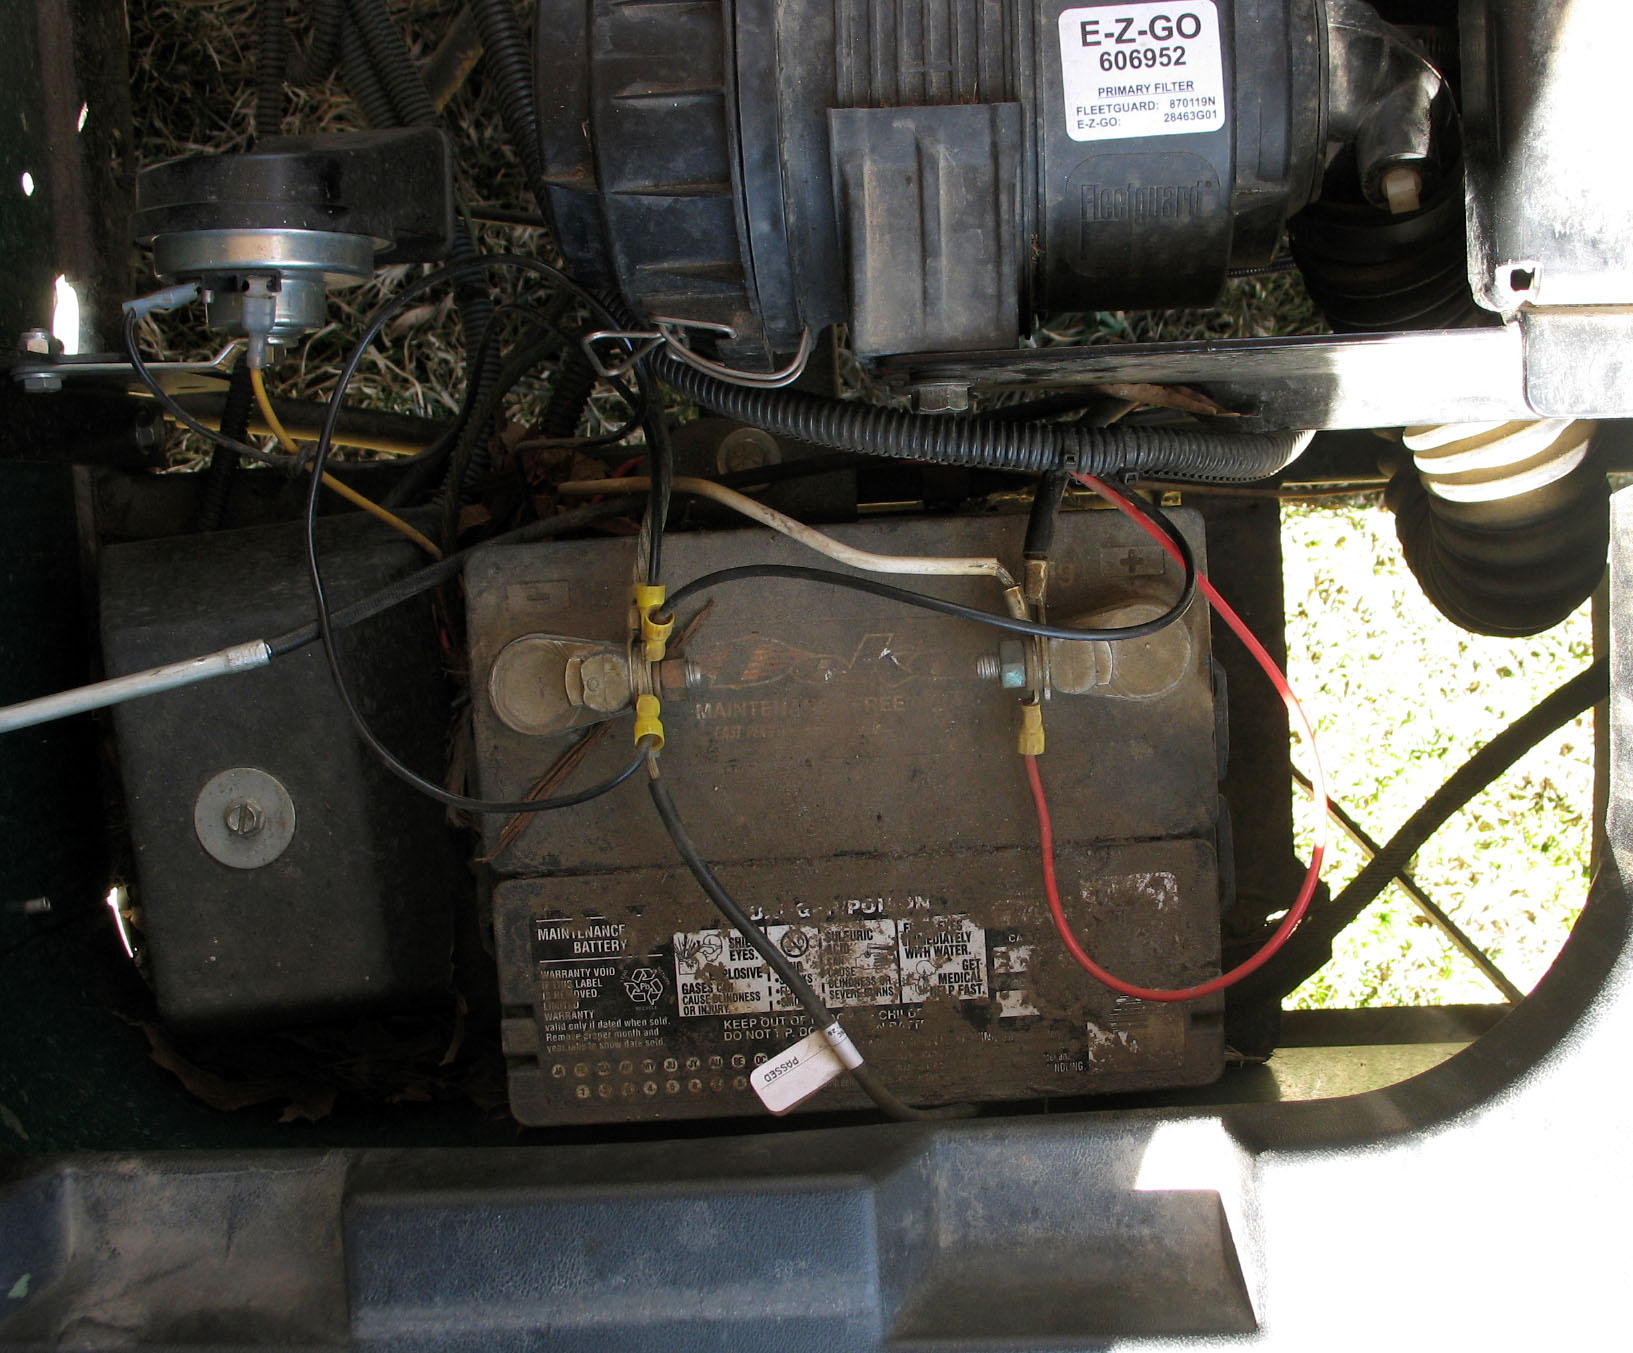 1985 ez go wiring diagram fd 5811  wiring diagram golf carts ez go together with harley golf  wiring diagram golf carts ez go